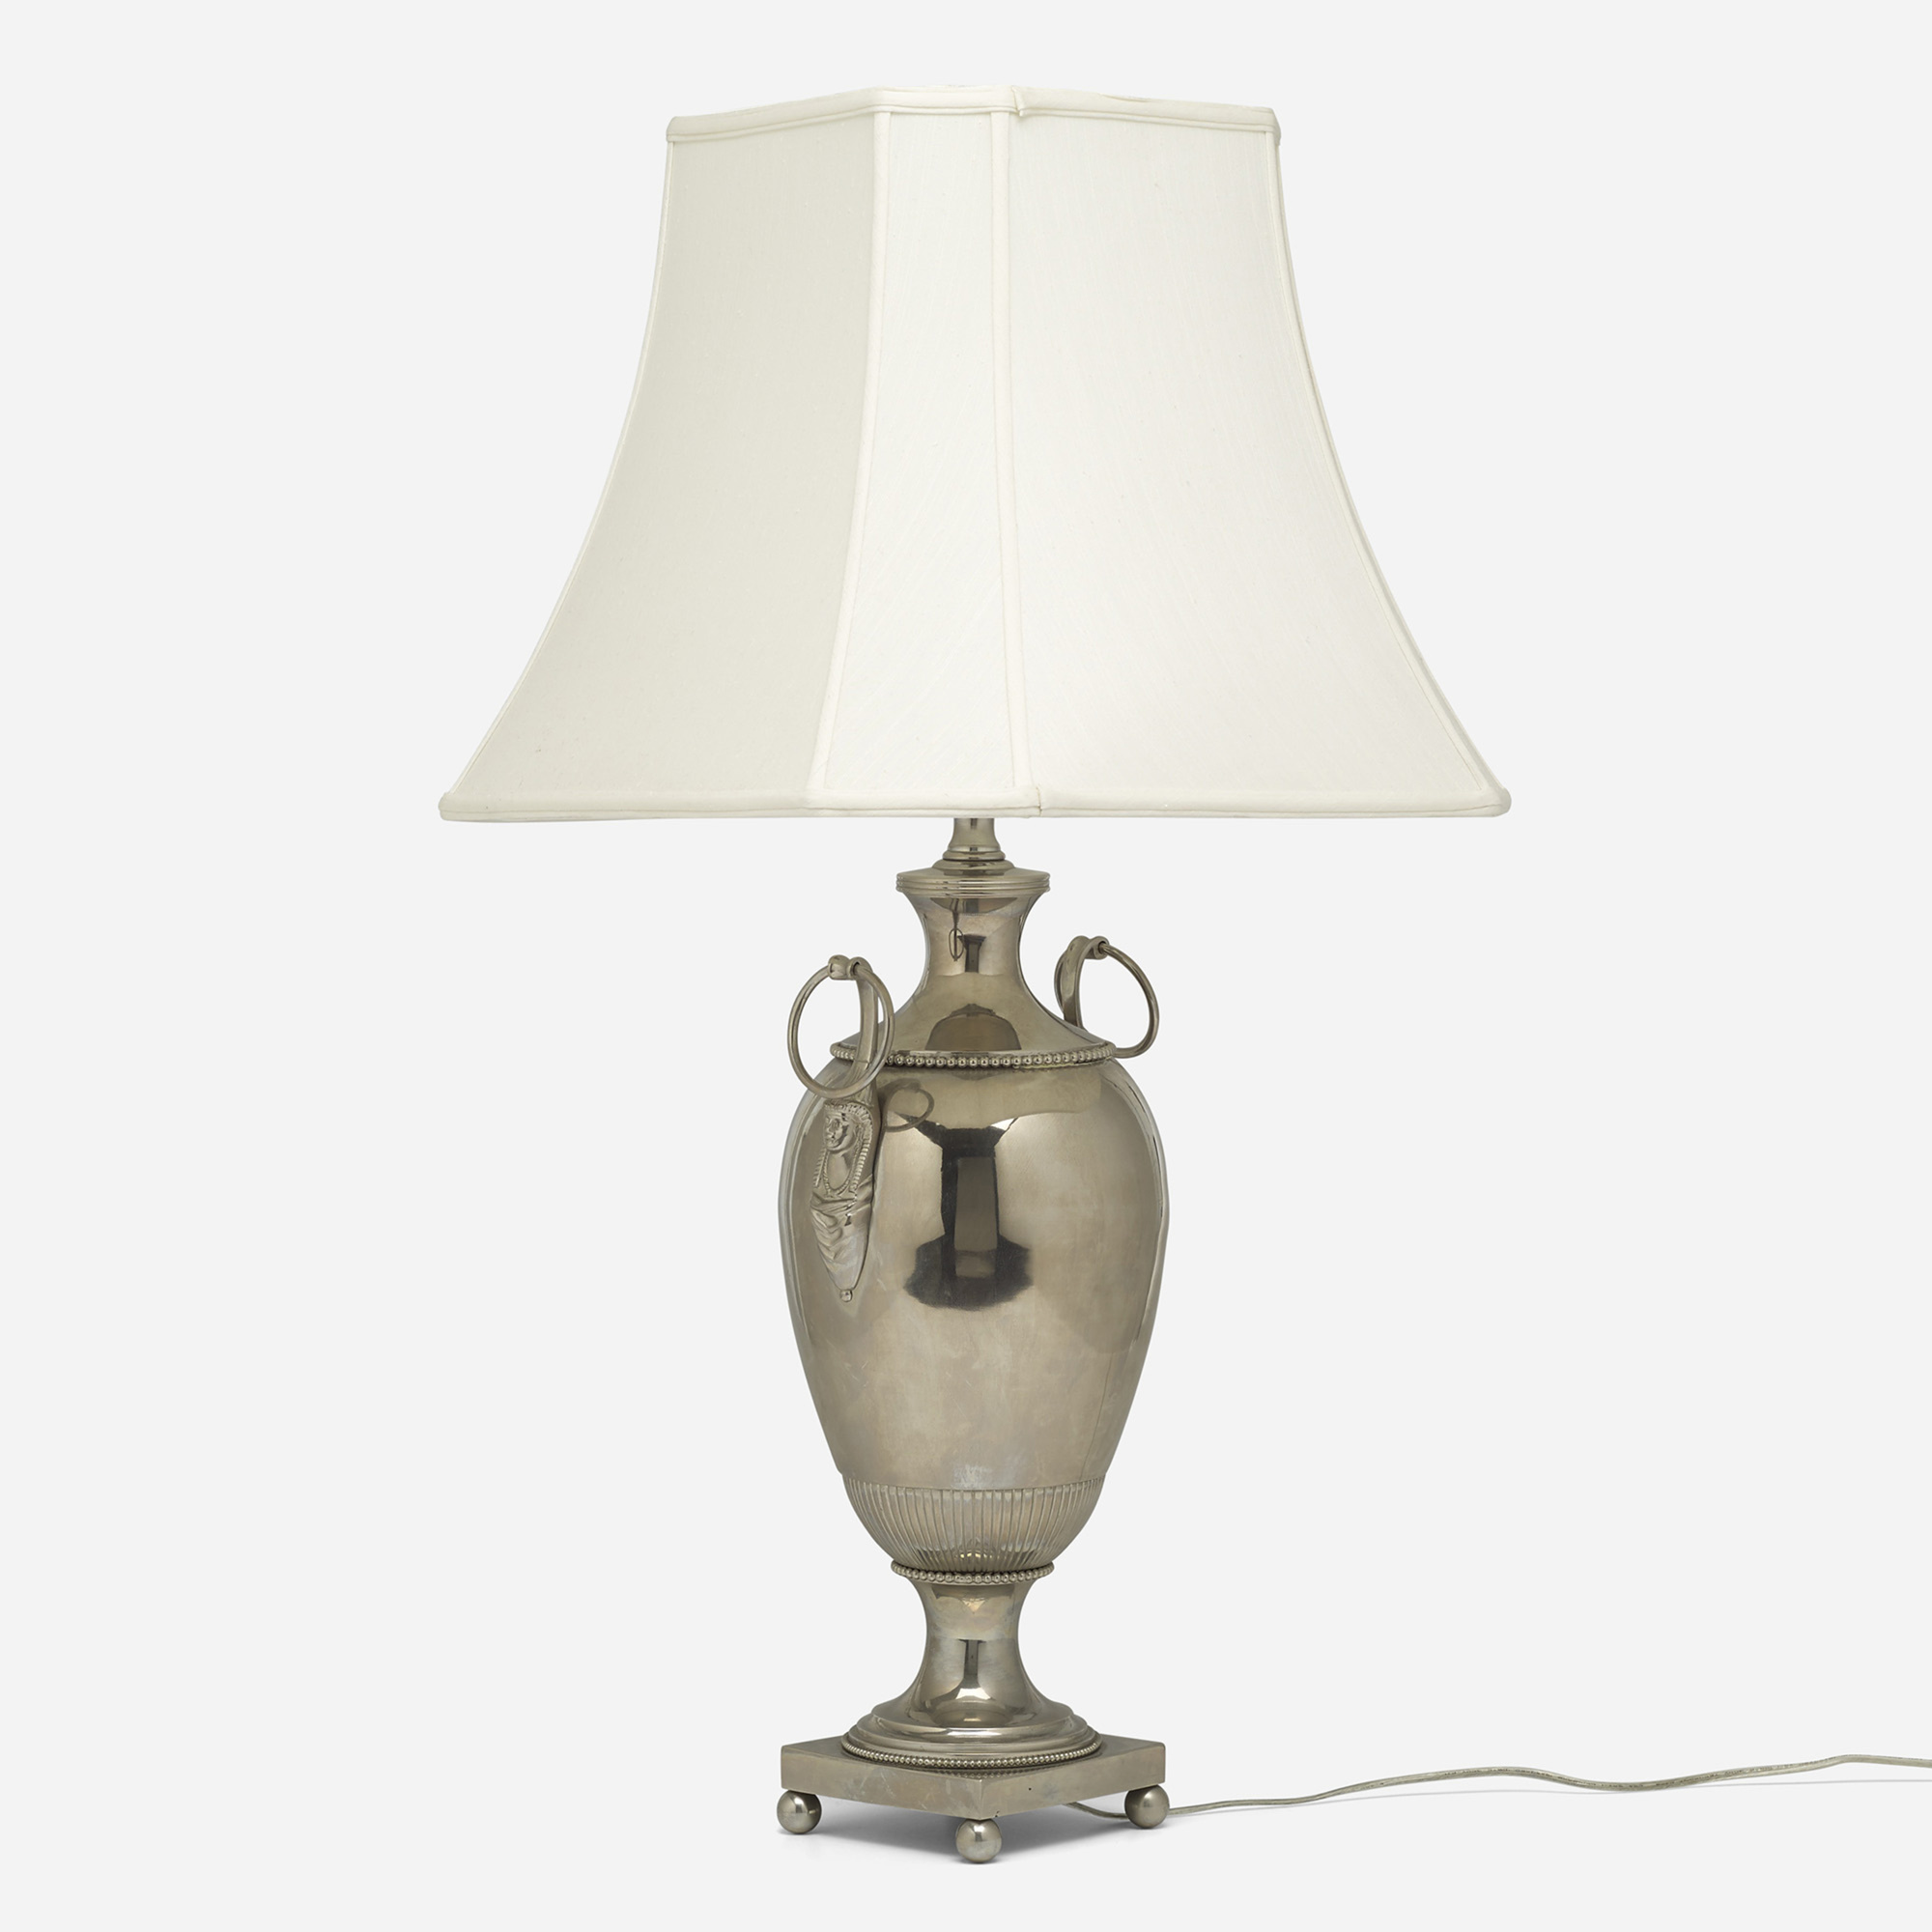 293: French / table lamp (1 of 2)